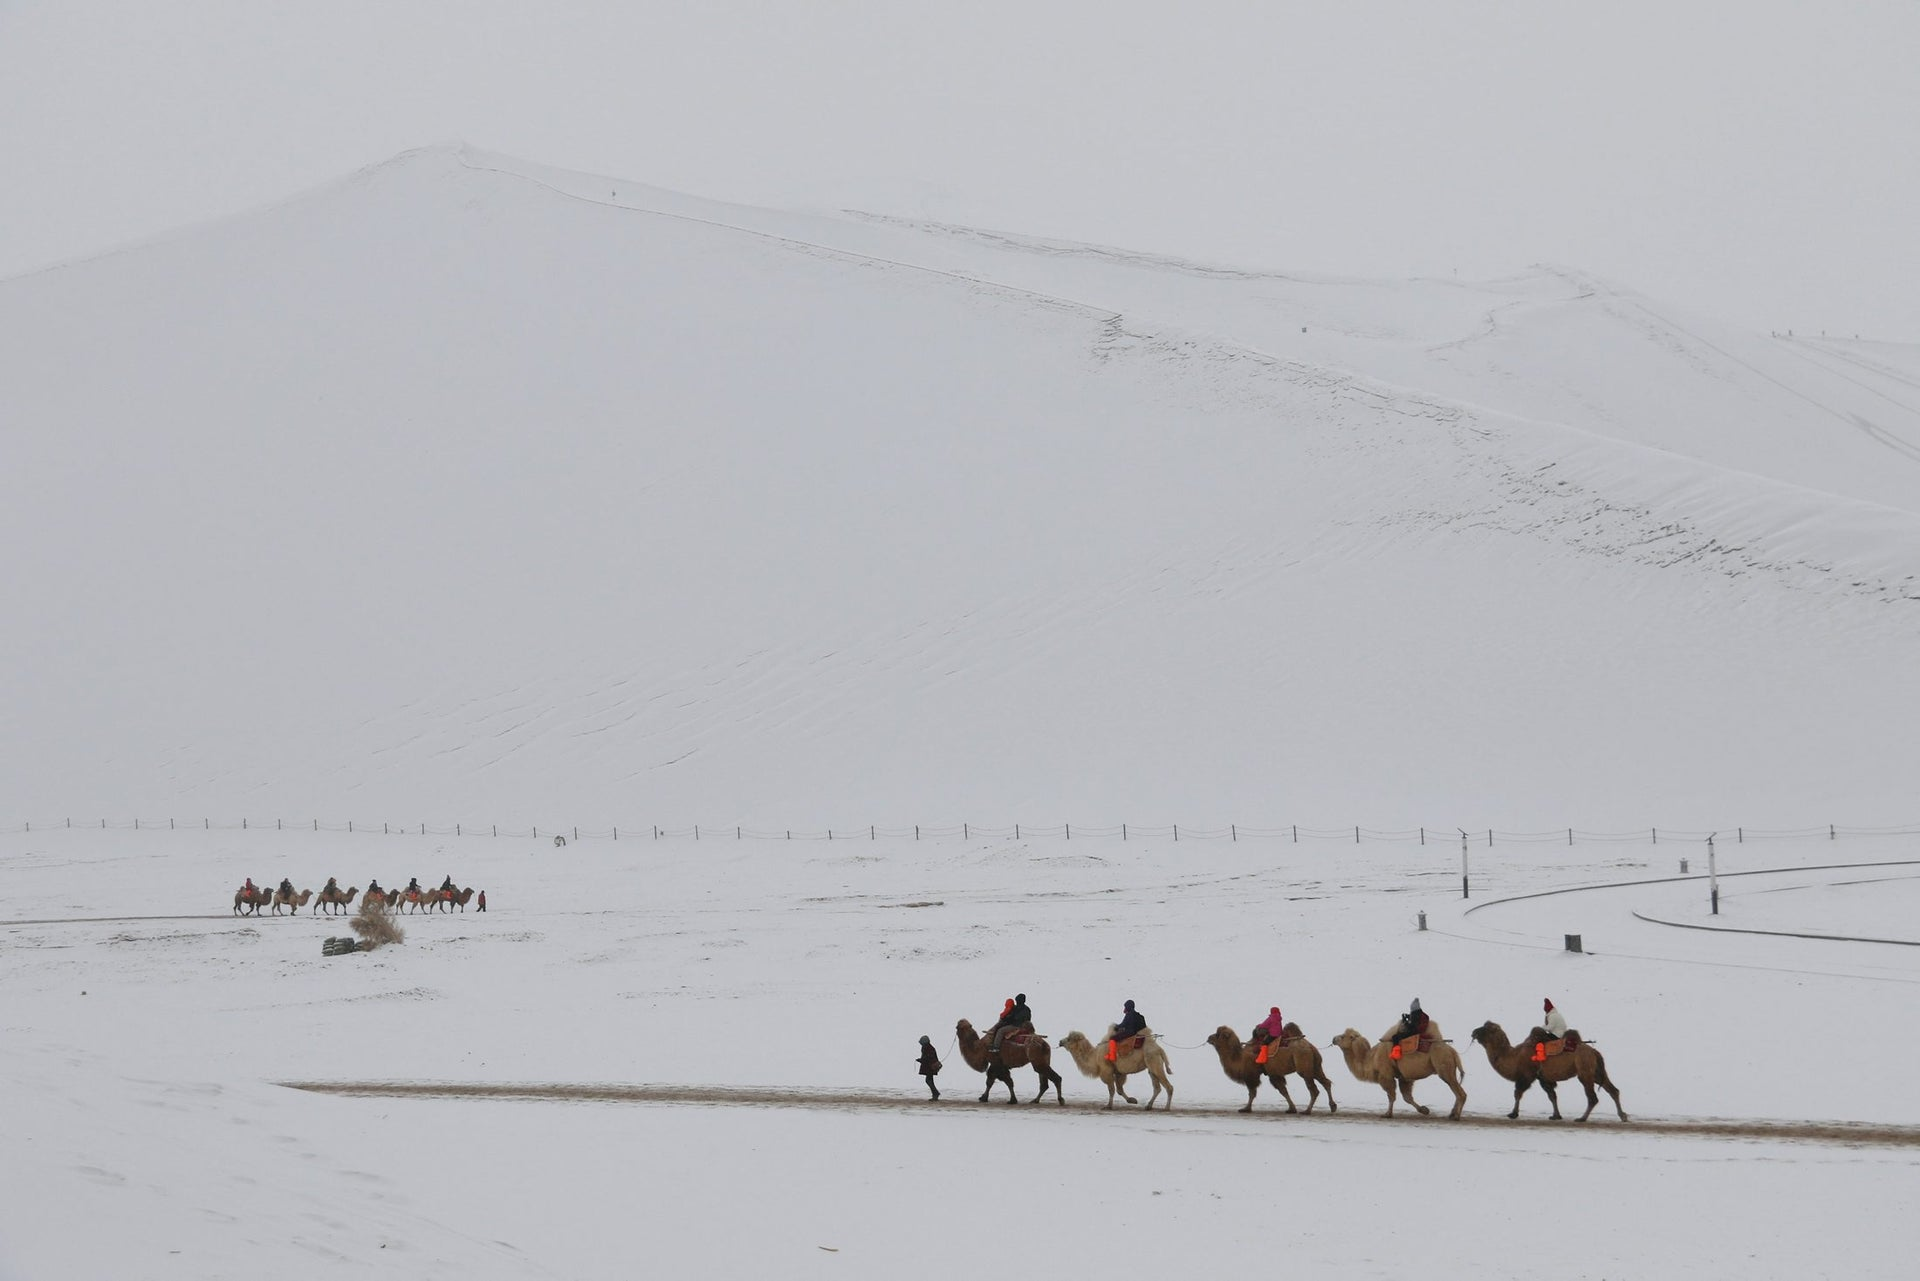 Camels originated about 45 million years ago in North America, whence they spread to South America,  Africa and Asia. The picture shows camels bearing people through snow in the desert at Mingsha Shan in Dunhuang, Gansu province, China